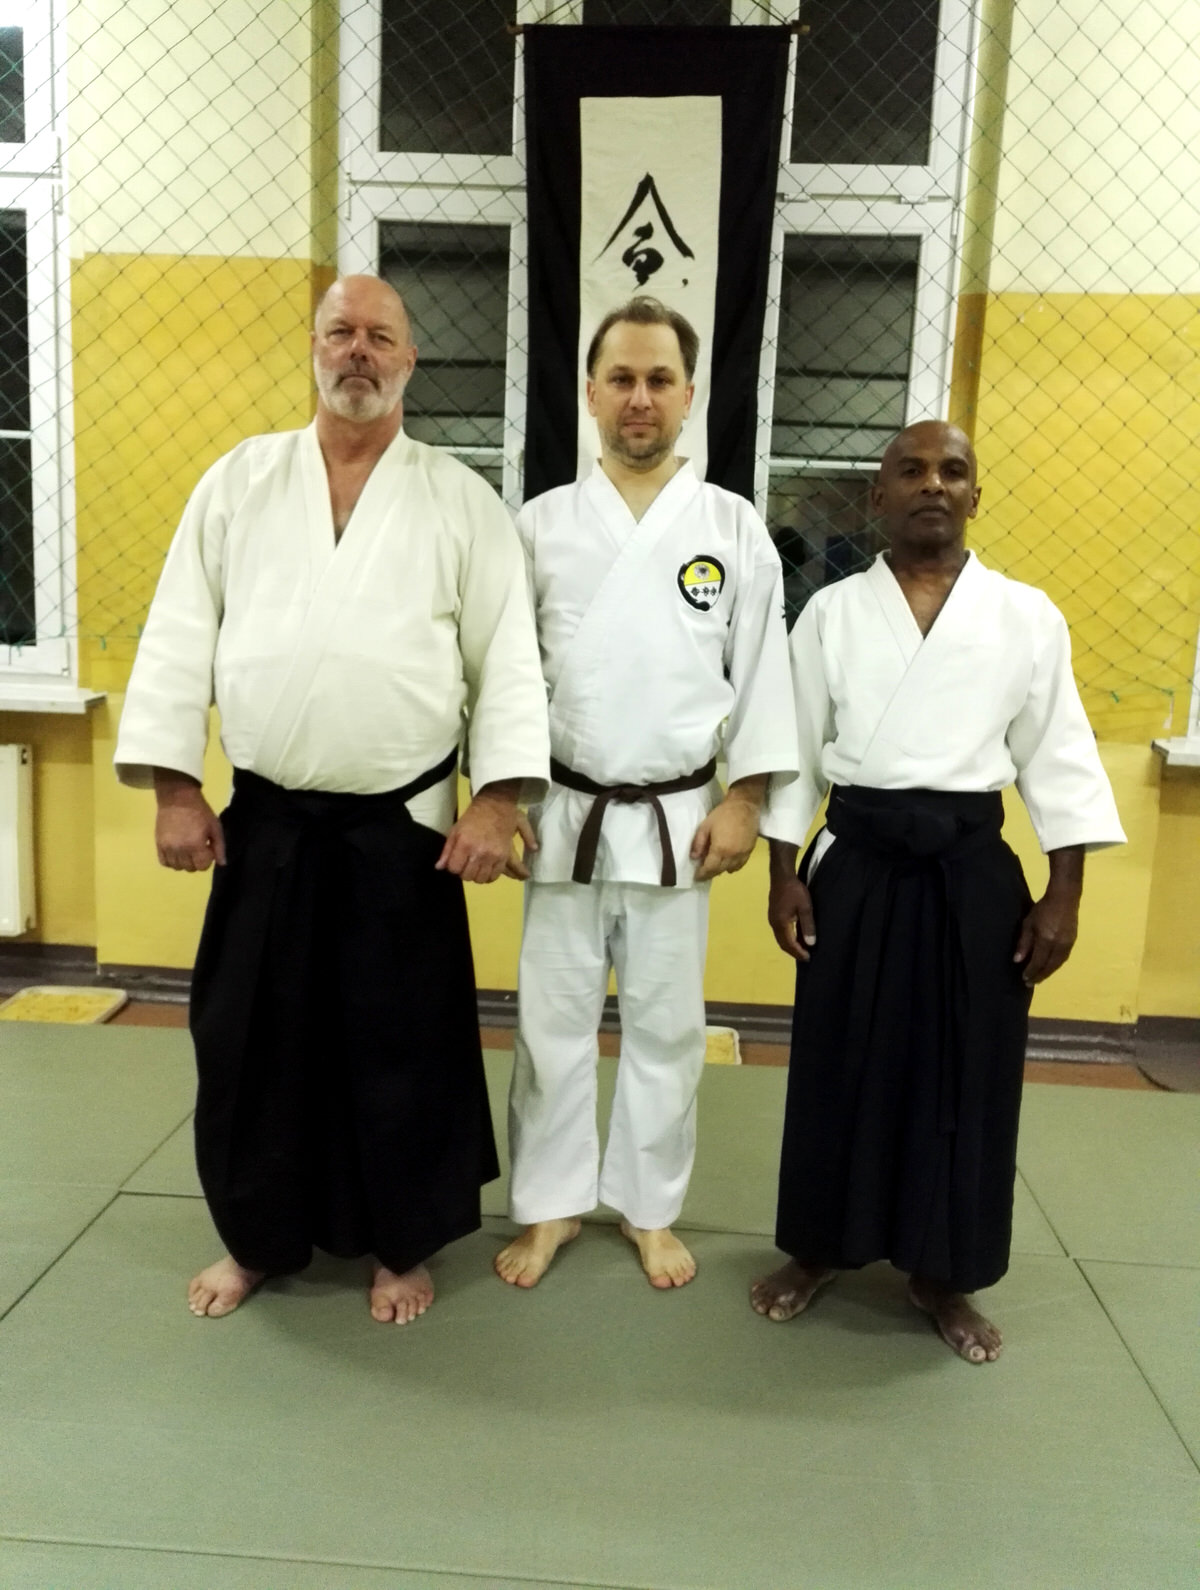 Aikido Yoshinkan Seminar in Jablonec nad Nisou, Czech with Robert Mustard and Joe Thambu